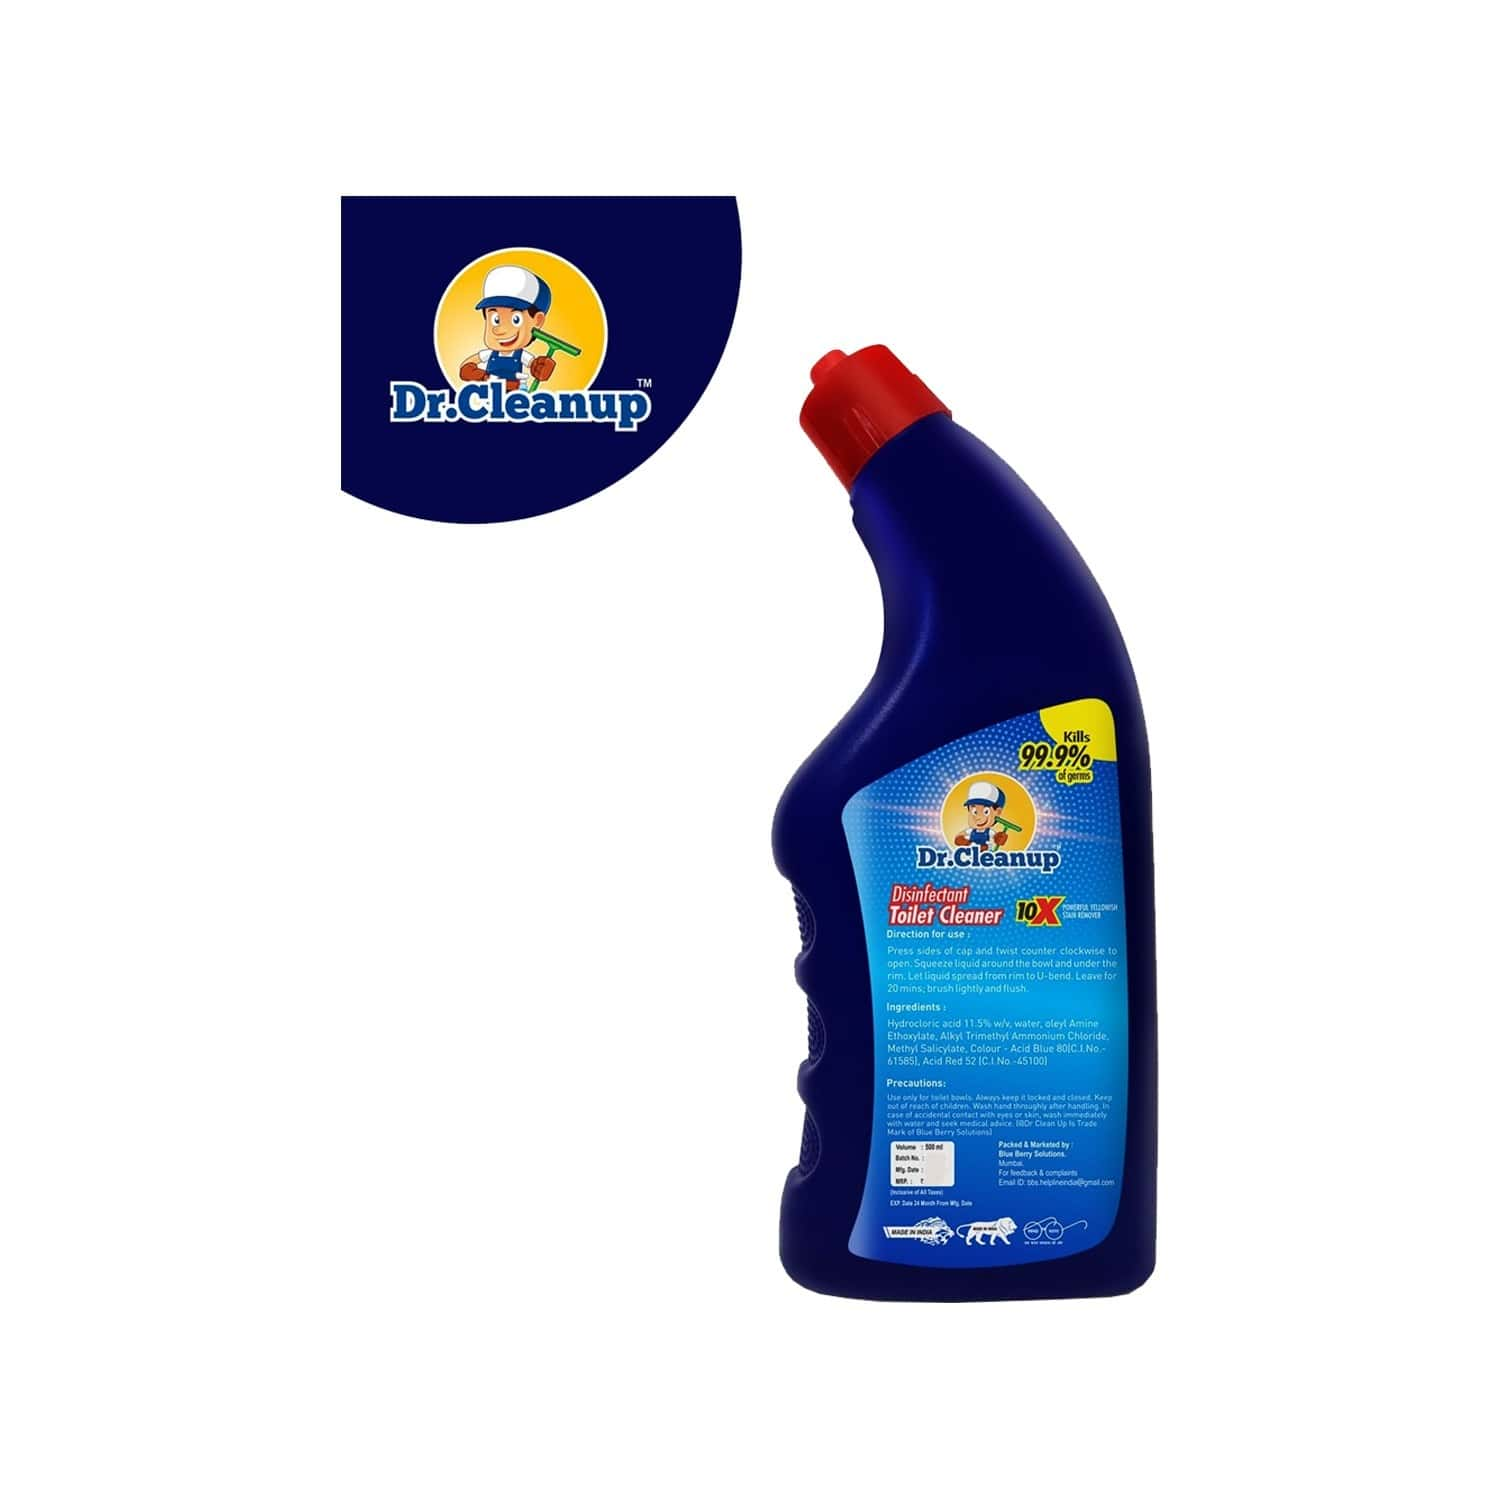 Dr Cleanup Disinfectant Toilet Cleaner - 500ml